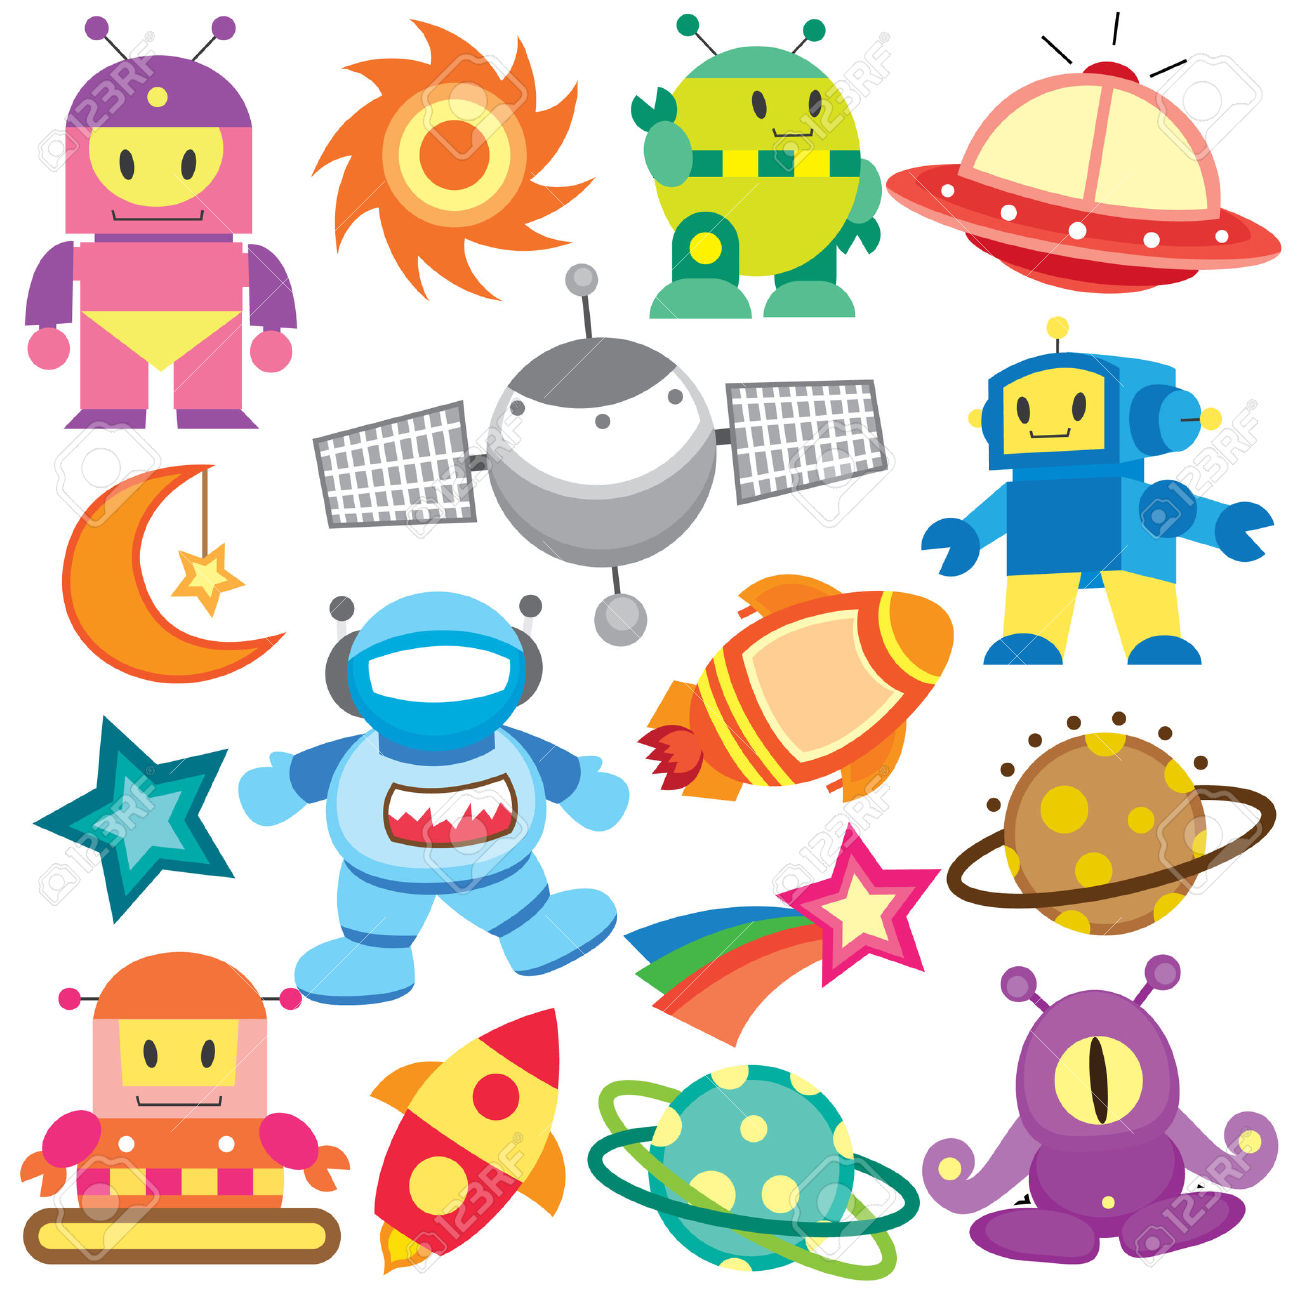 Outer Space Clipart - Blogsbeta